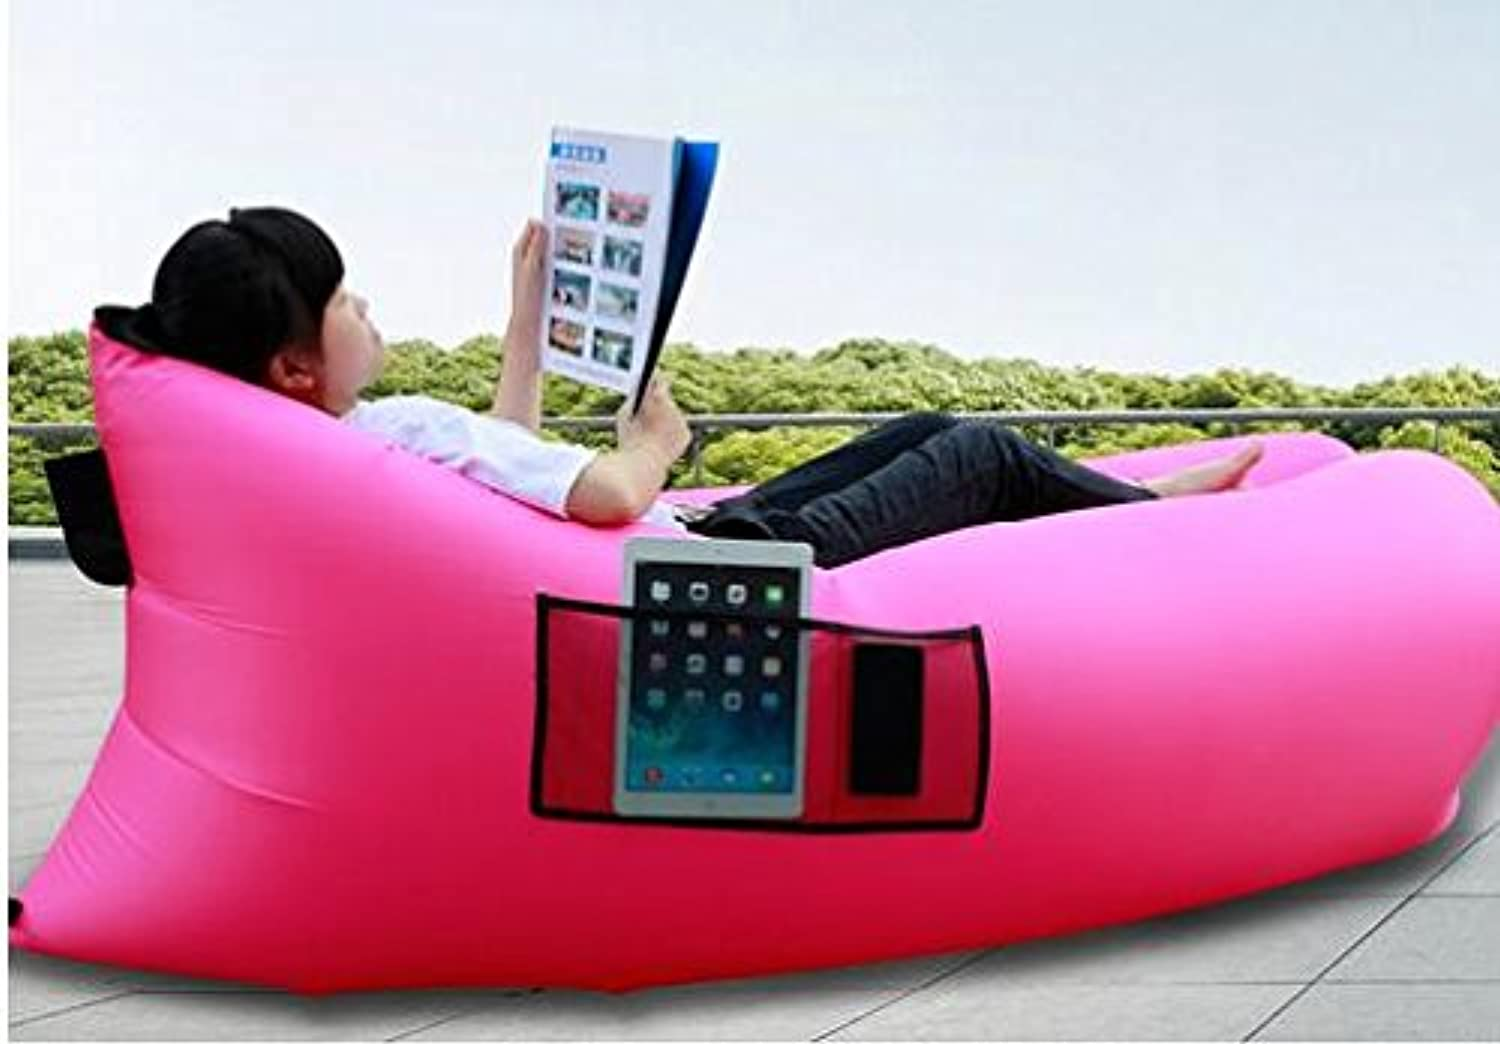 Hua Rui -Inflatable Lounger Air Filled Balloon Furniture, Hangout Bean Bag, Outdoor or Indoor Air Sleeping Sofa, Couch, Portable Waterproof Compression Sacks for Camping, Beach, Park, Backyard